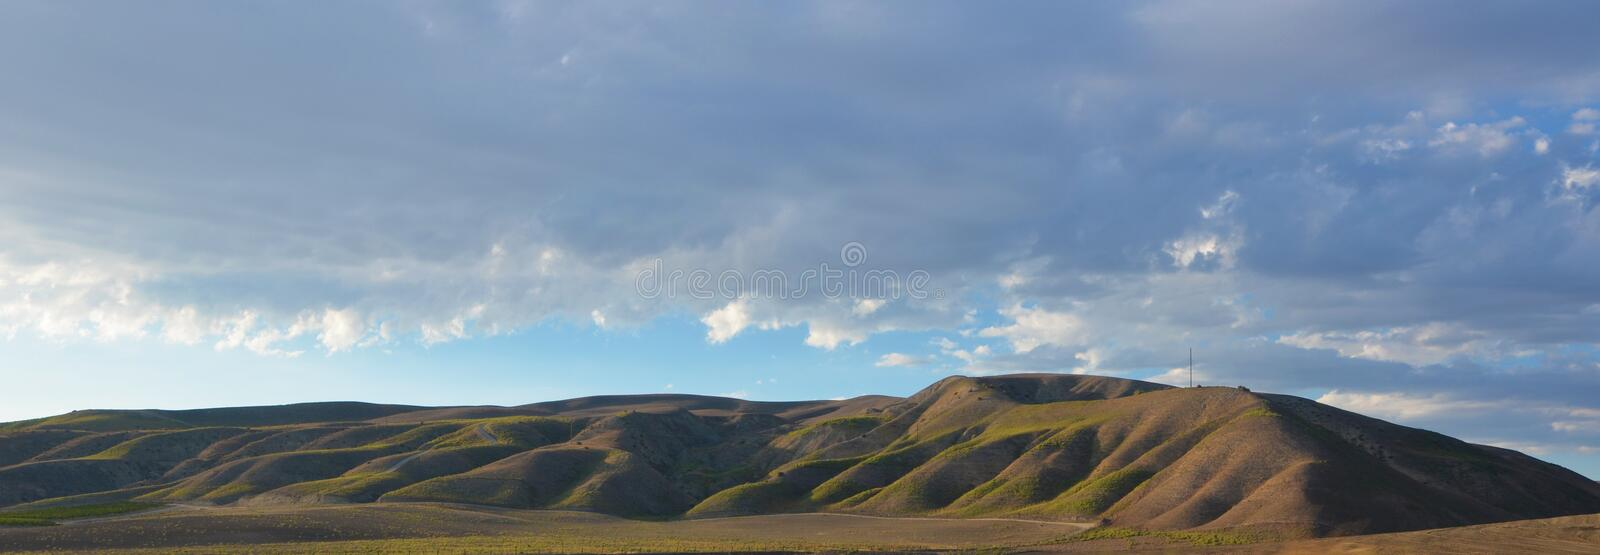 North California mountains in late summer with blue sky. North California mountains in late hot summer with blue sky america american big cloud cloudy coast stock photo